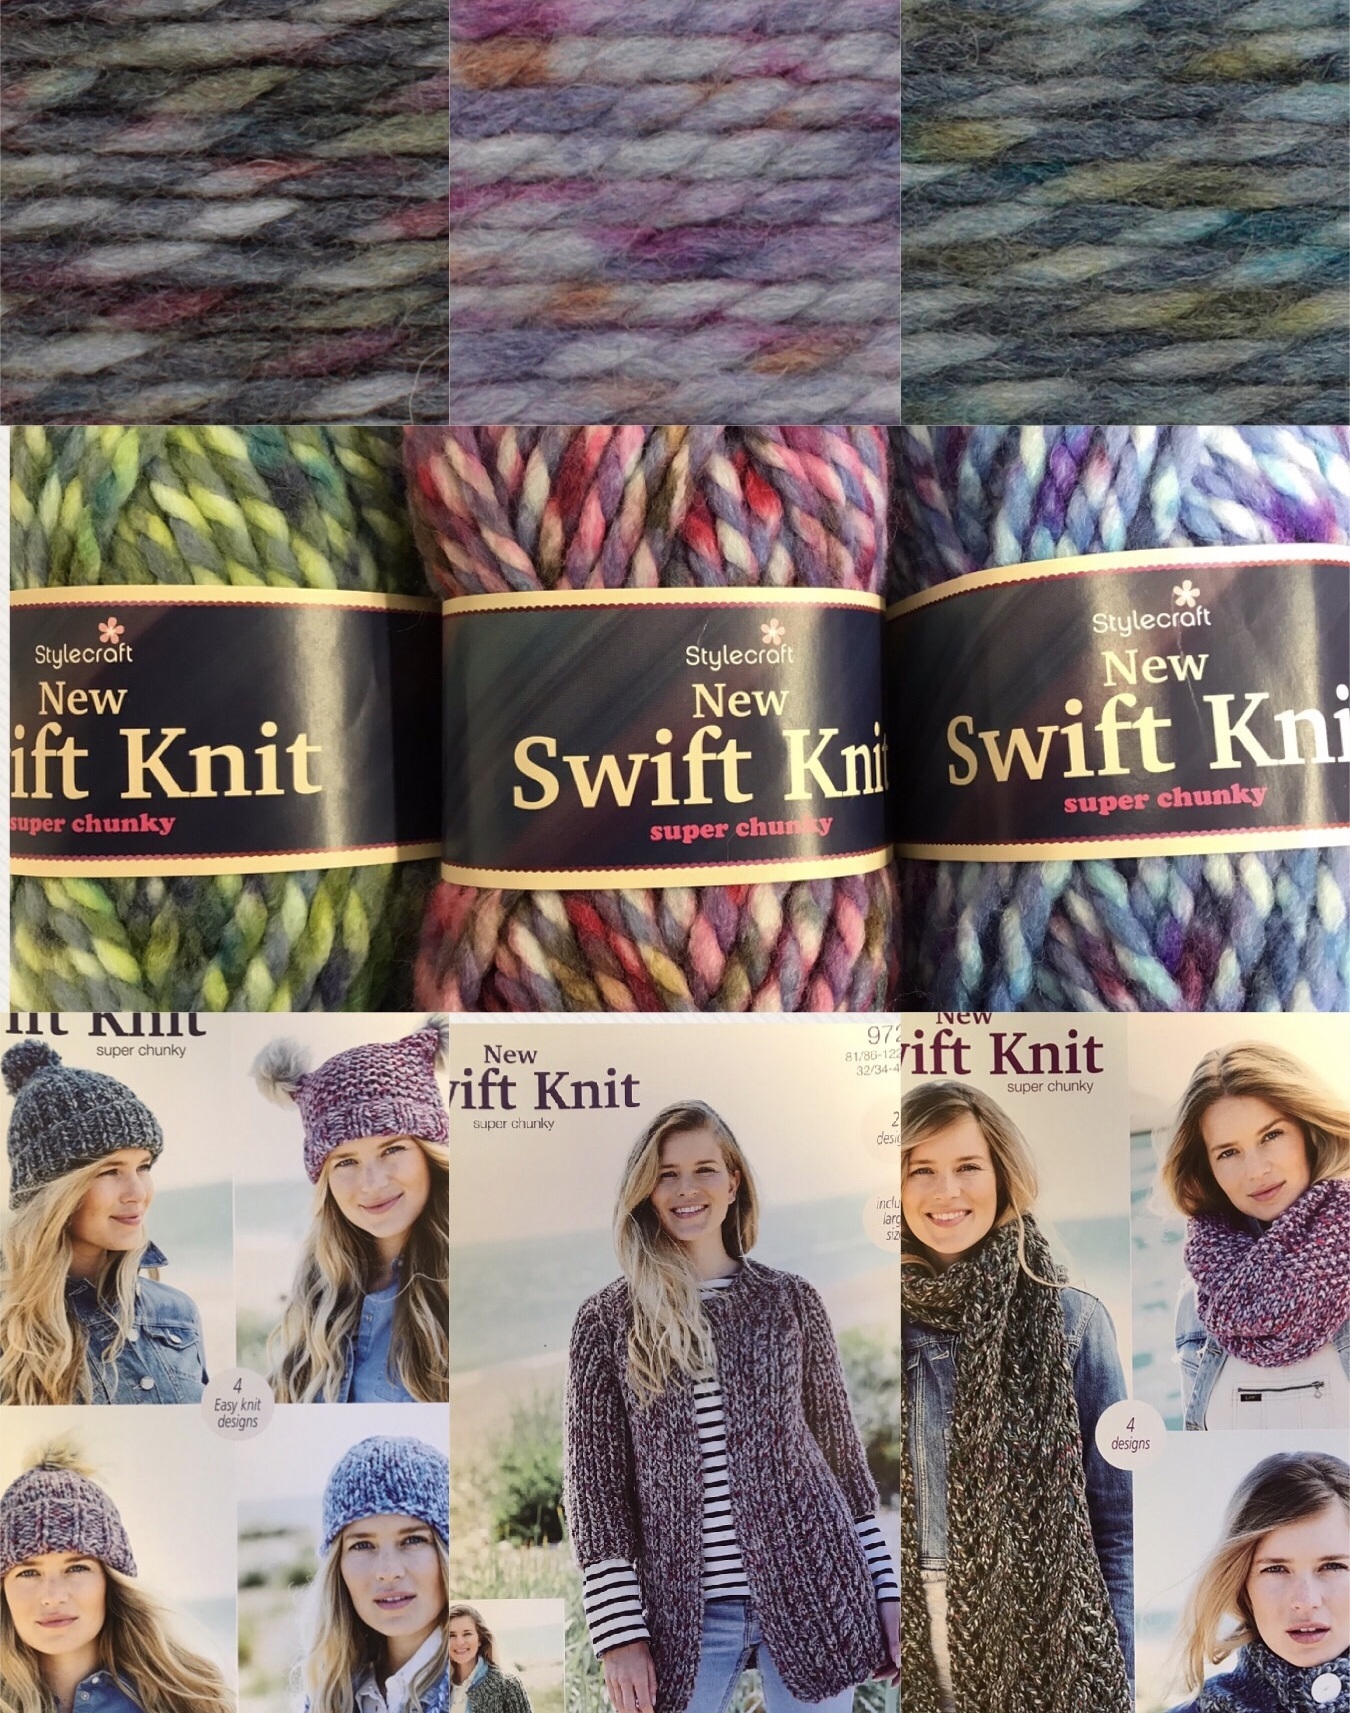 New Swift Knit Super Chunky